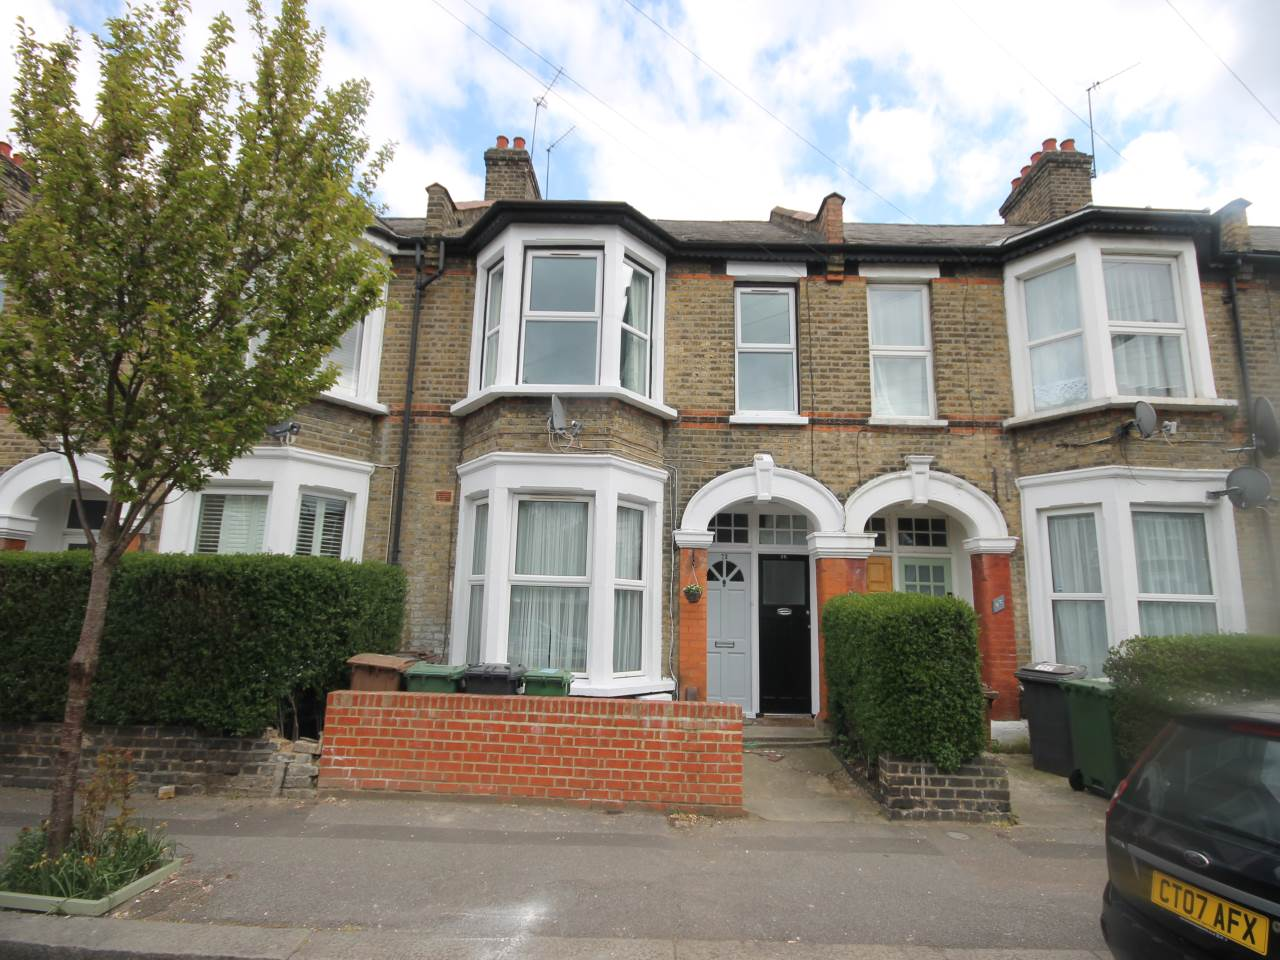 3 bed flat to rent in Brunswick Road, Leyton, E10